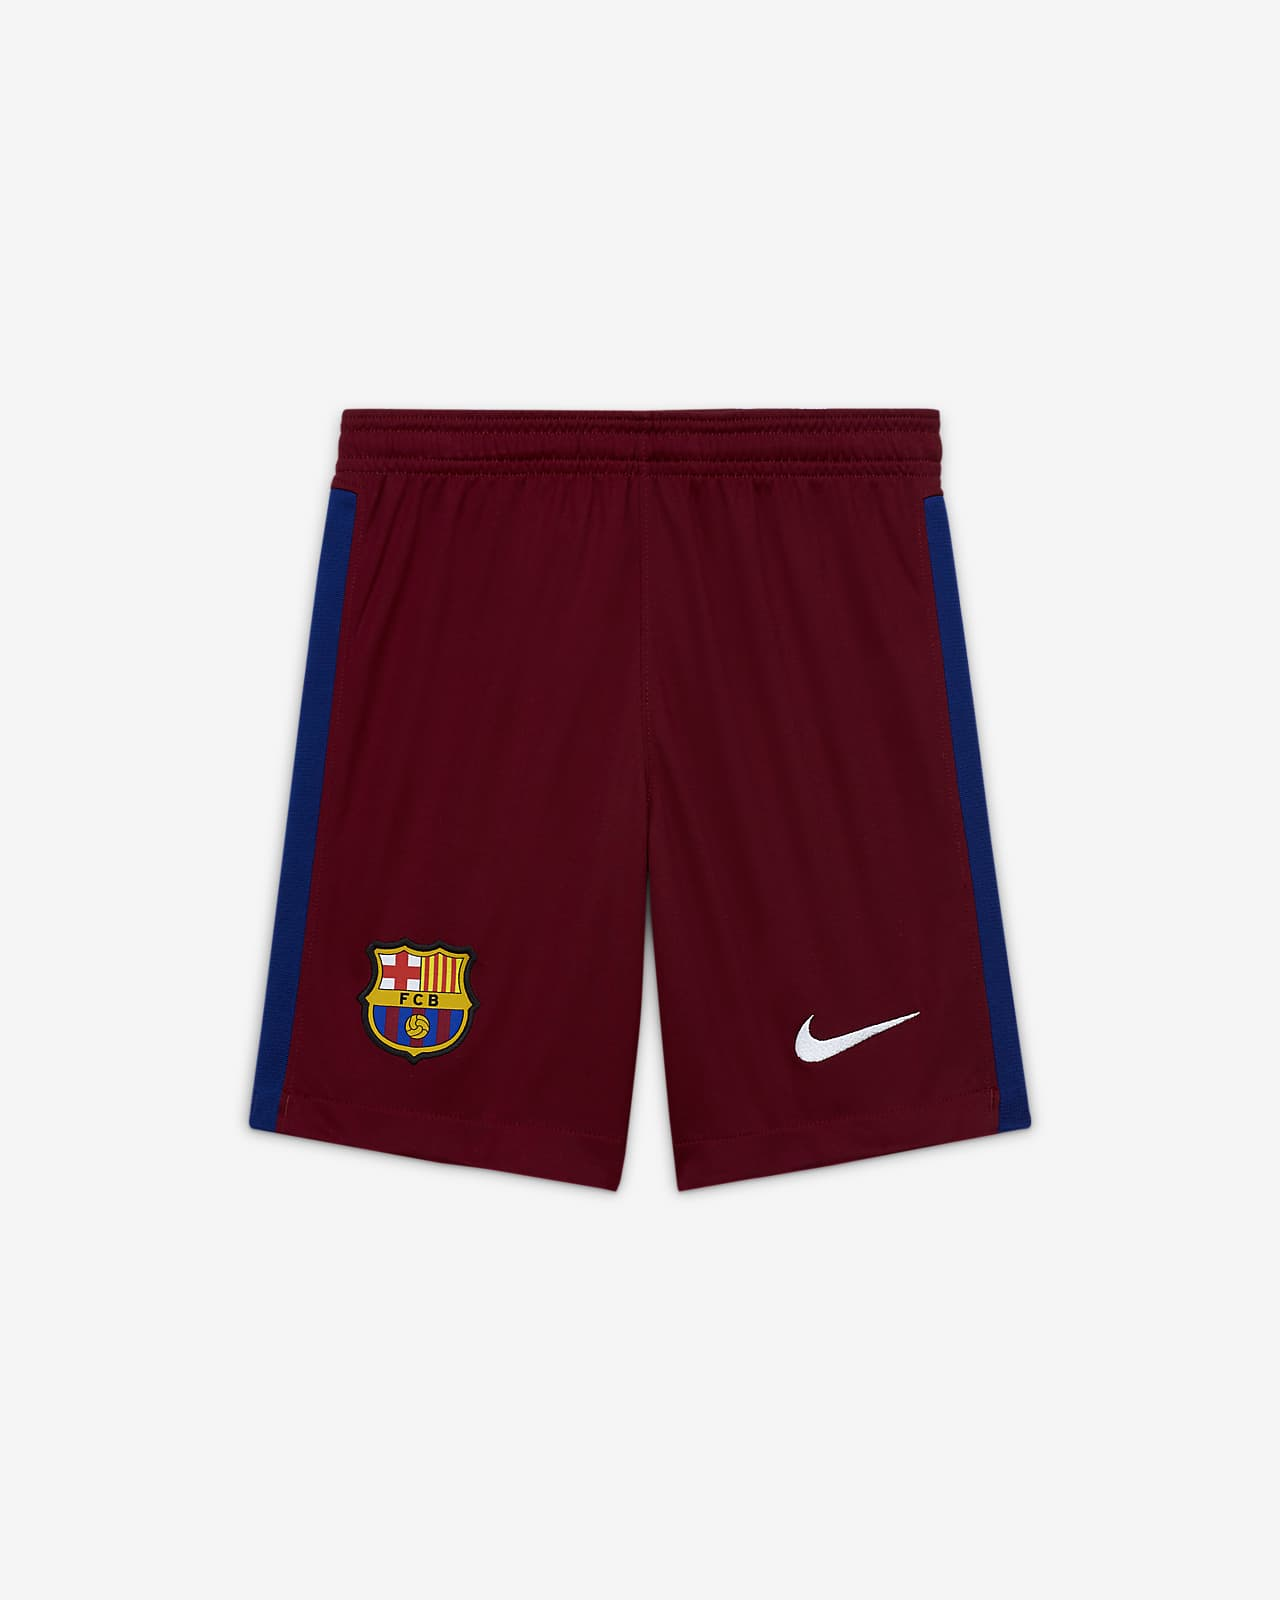 f c barcelona 2020 21 stadium goalkeeper older kids football shorts nike lu f c barcelona 2020 21 stadium goalkeeper older kids football shorts